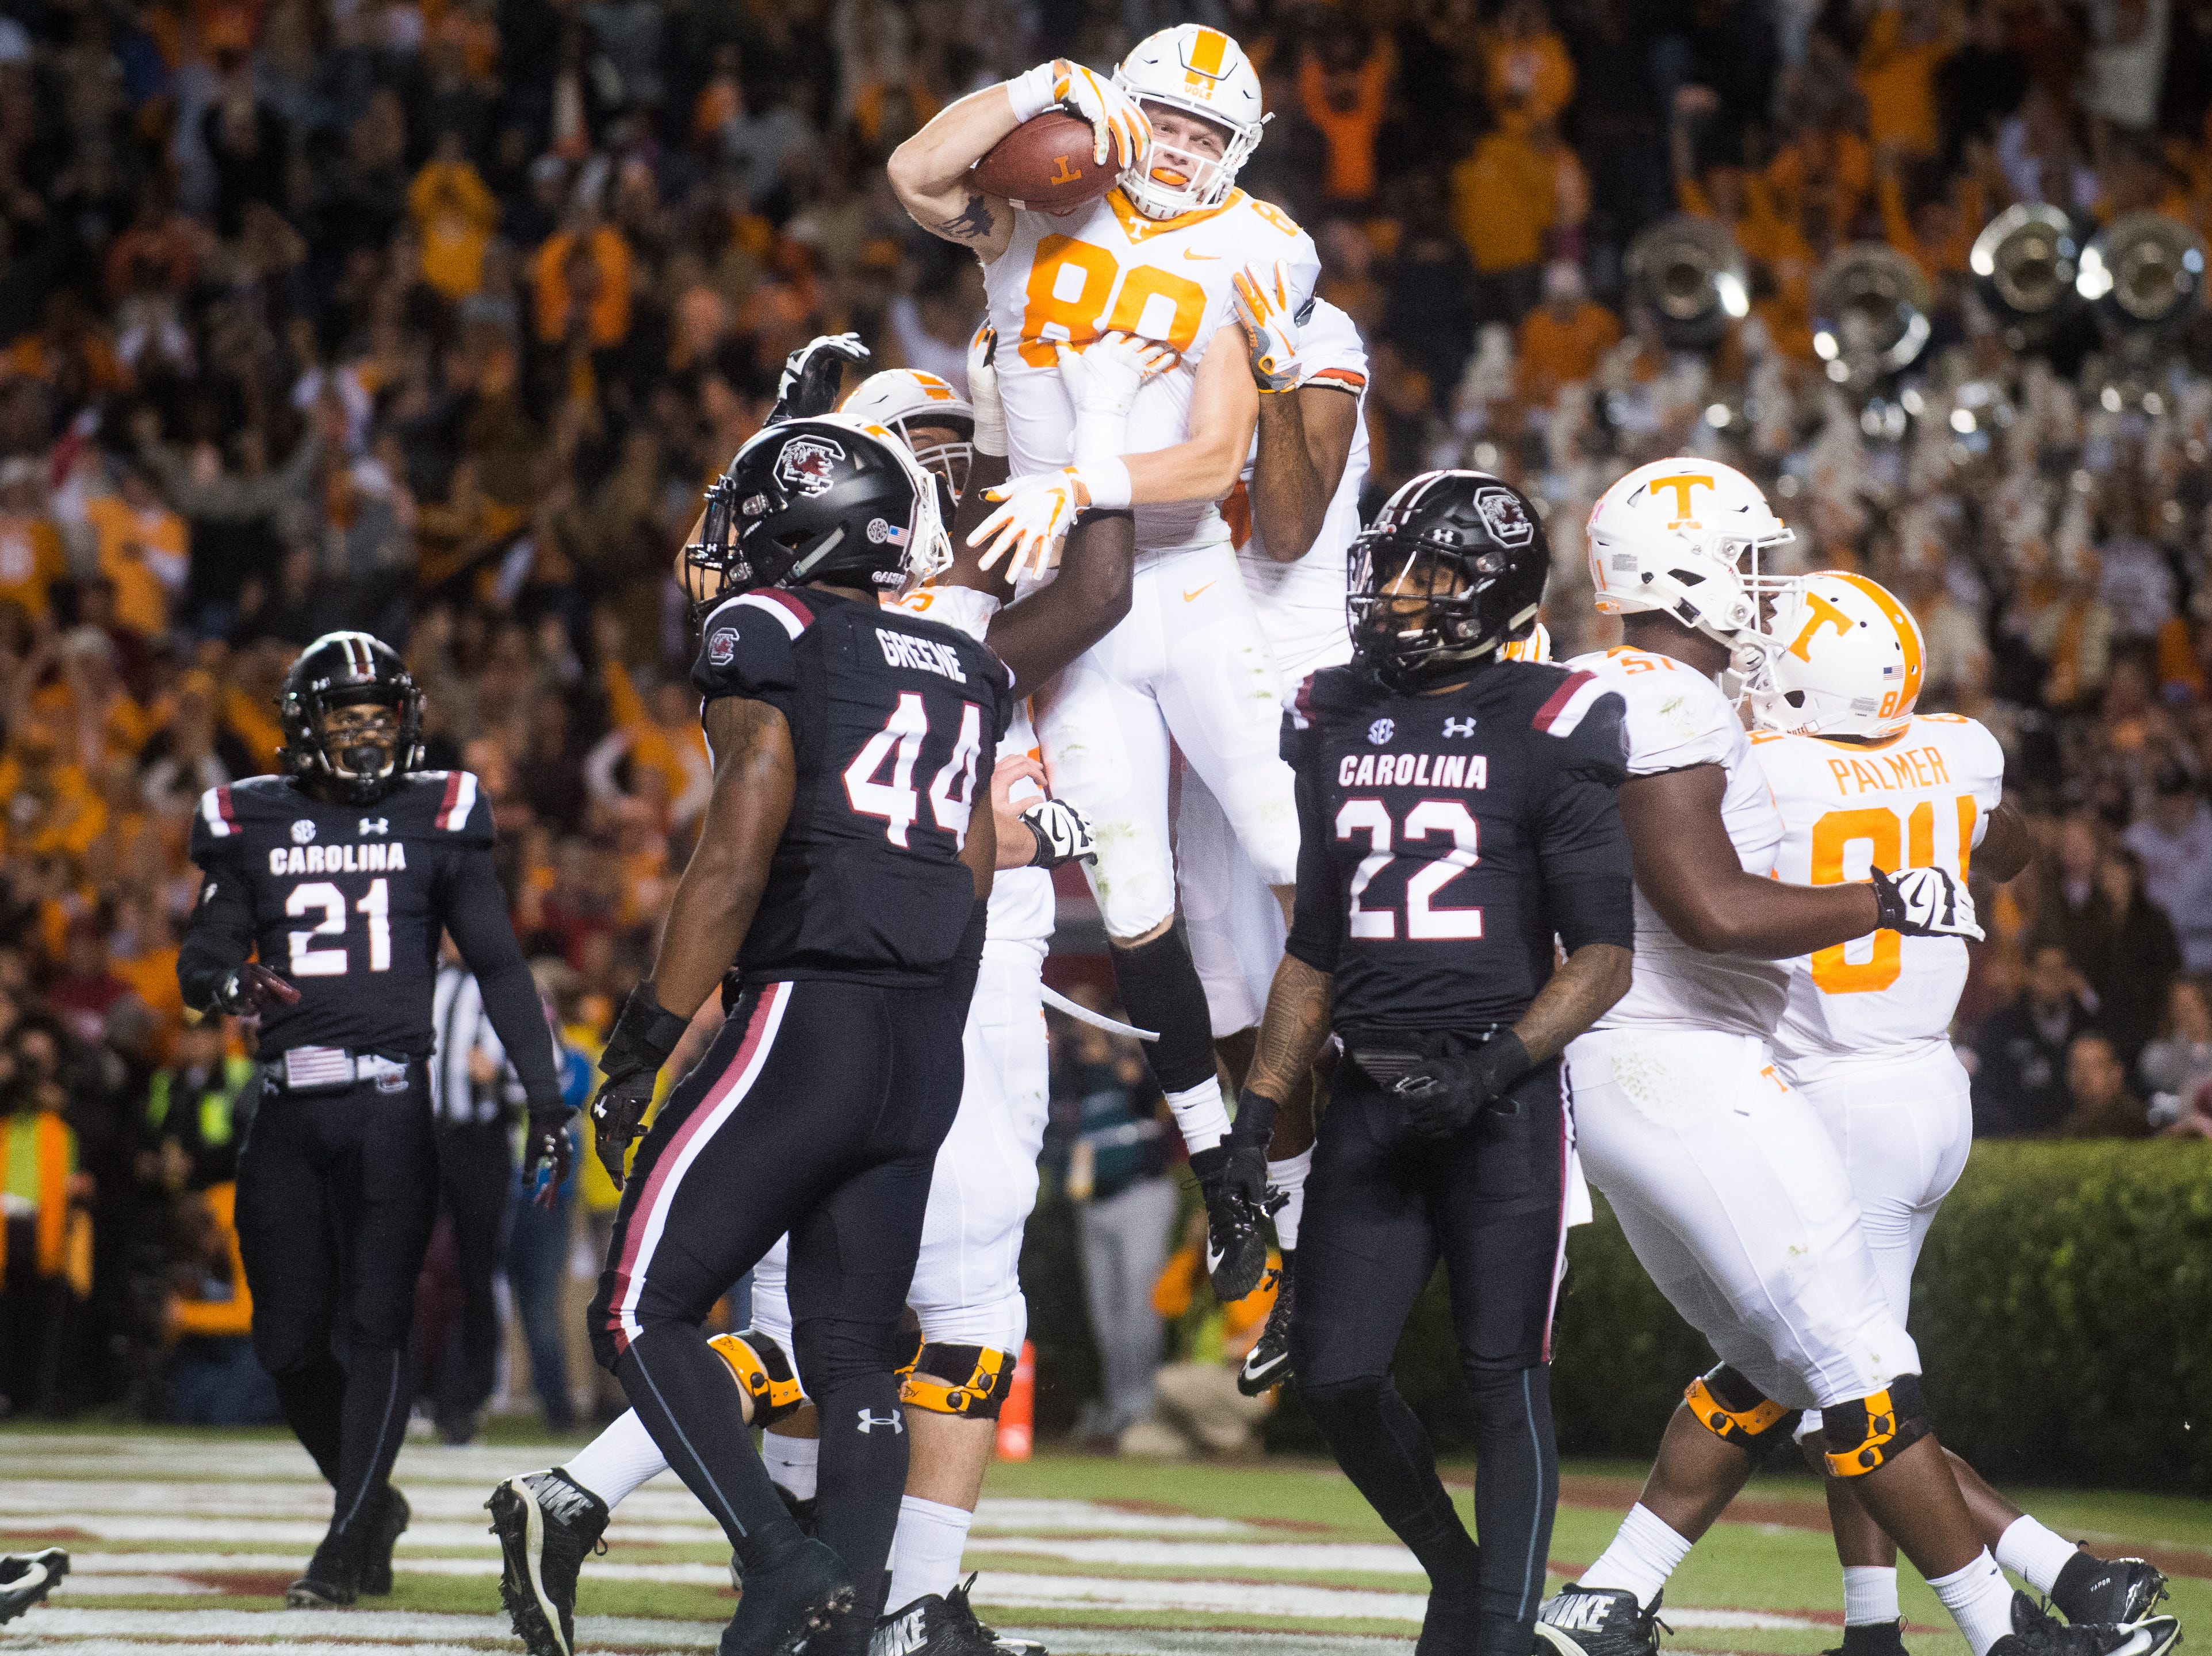 Tennessee tight end Eli Wolf (80) is congratulated after making the first touchdown of the game during the first quarter against  South Carolina at Williams-Brice Stadium in Columbia, South Carolina on Saturday, October 27, 2018.